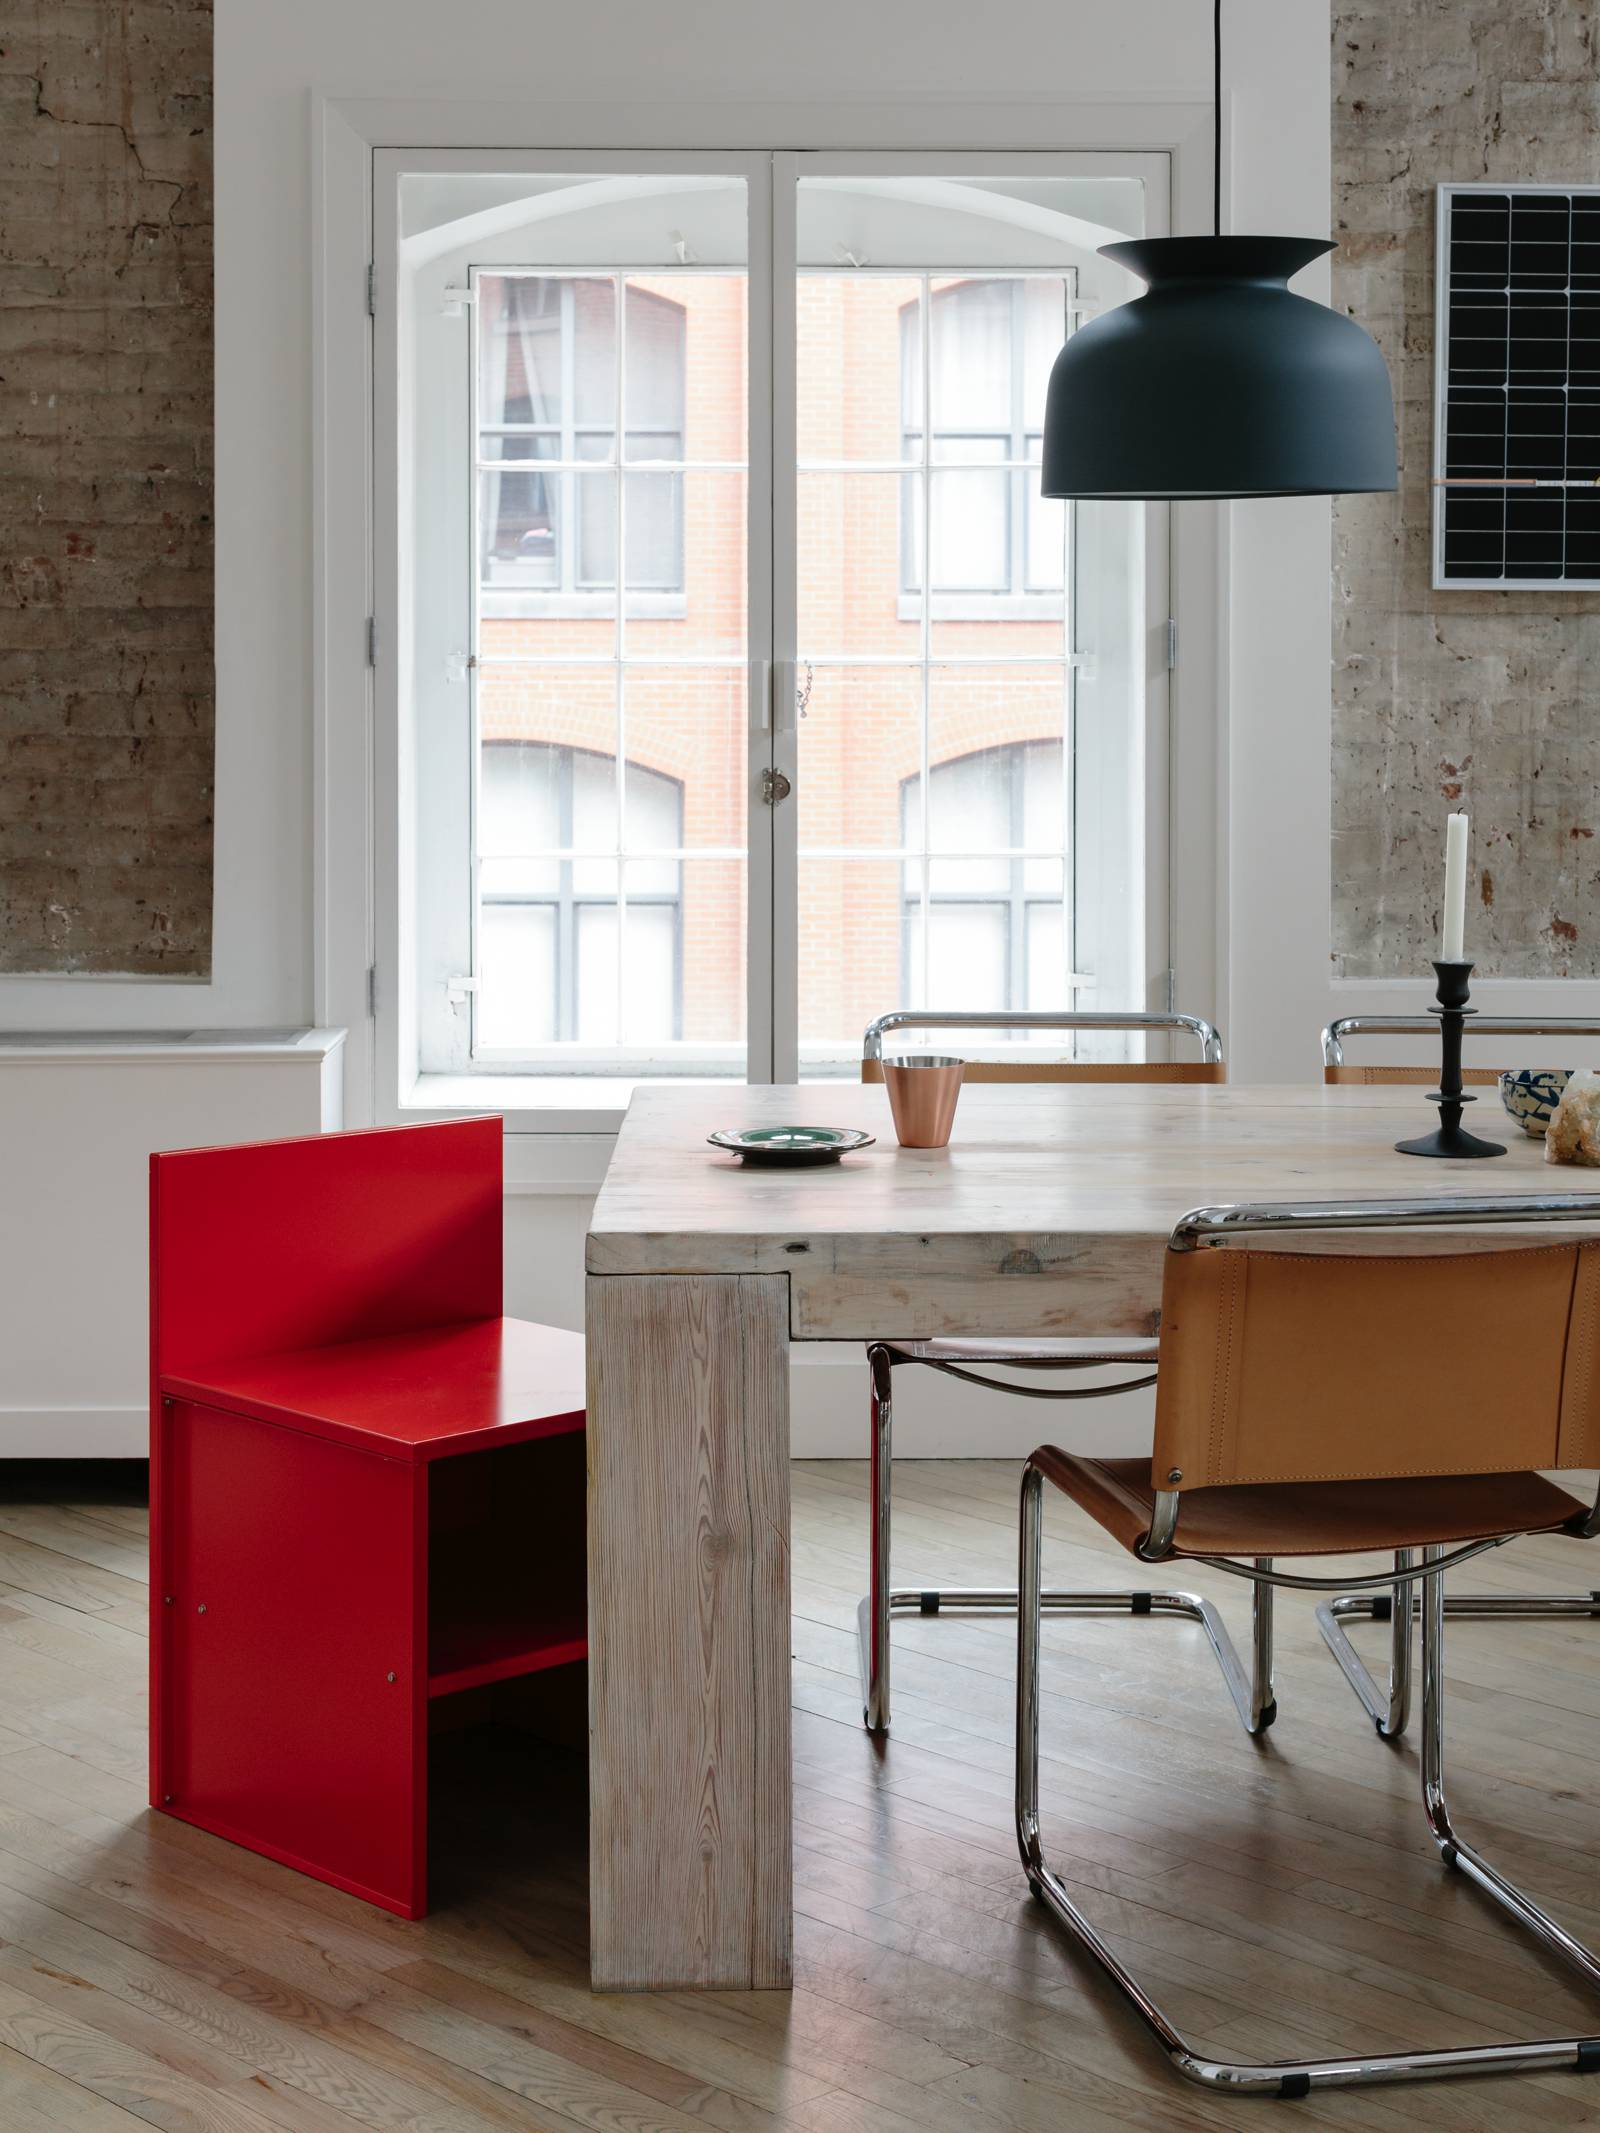 If Youu0027ve Ever Been Lucky Enough To Get Access To Artist Donald Juddu0027s  Restored Home In Soho, New York, Then Chances Are You Regularly Pine After  A Piece Of ...